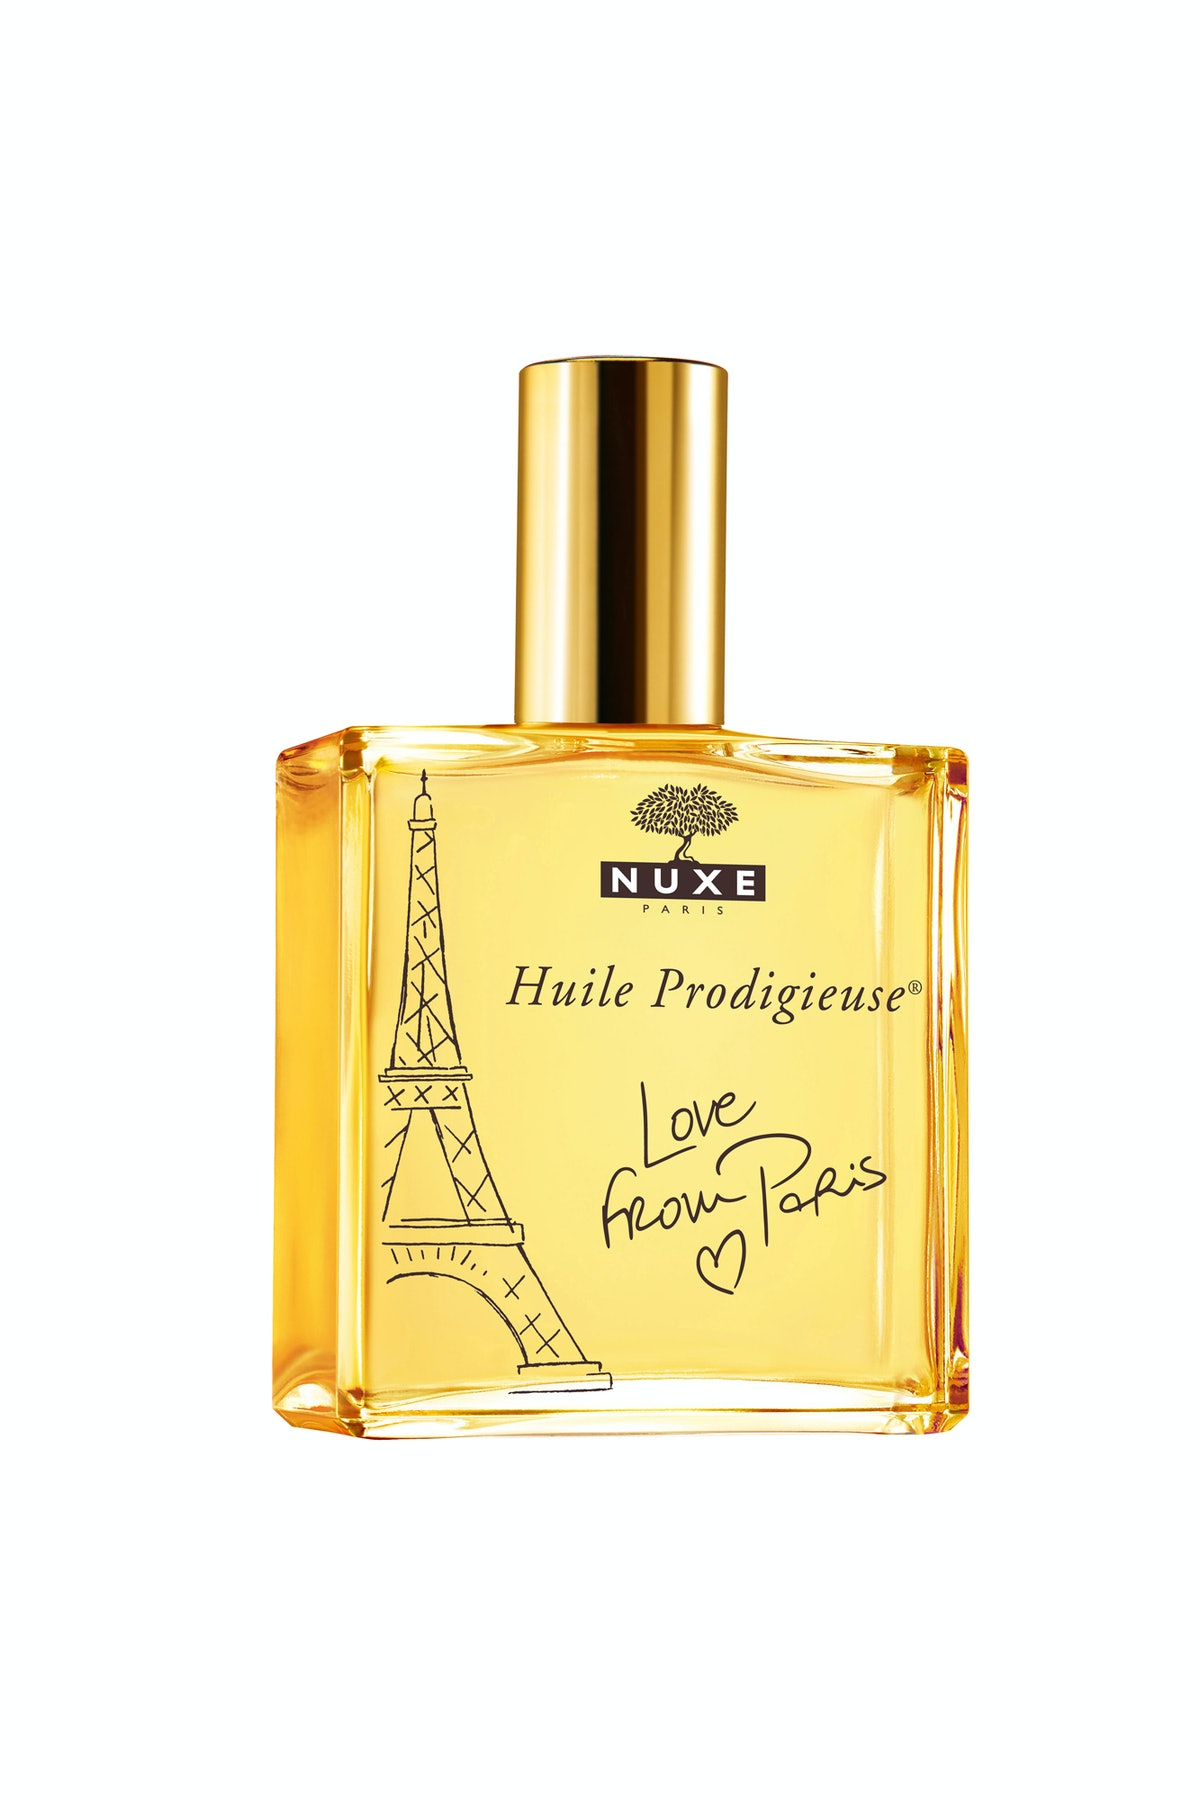 Nuxe Huile Prodigieuse limited edition dry oil, $45, nuxe.com.